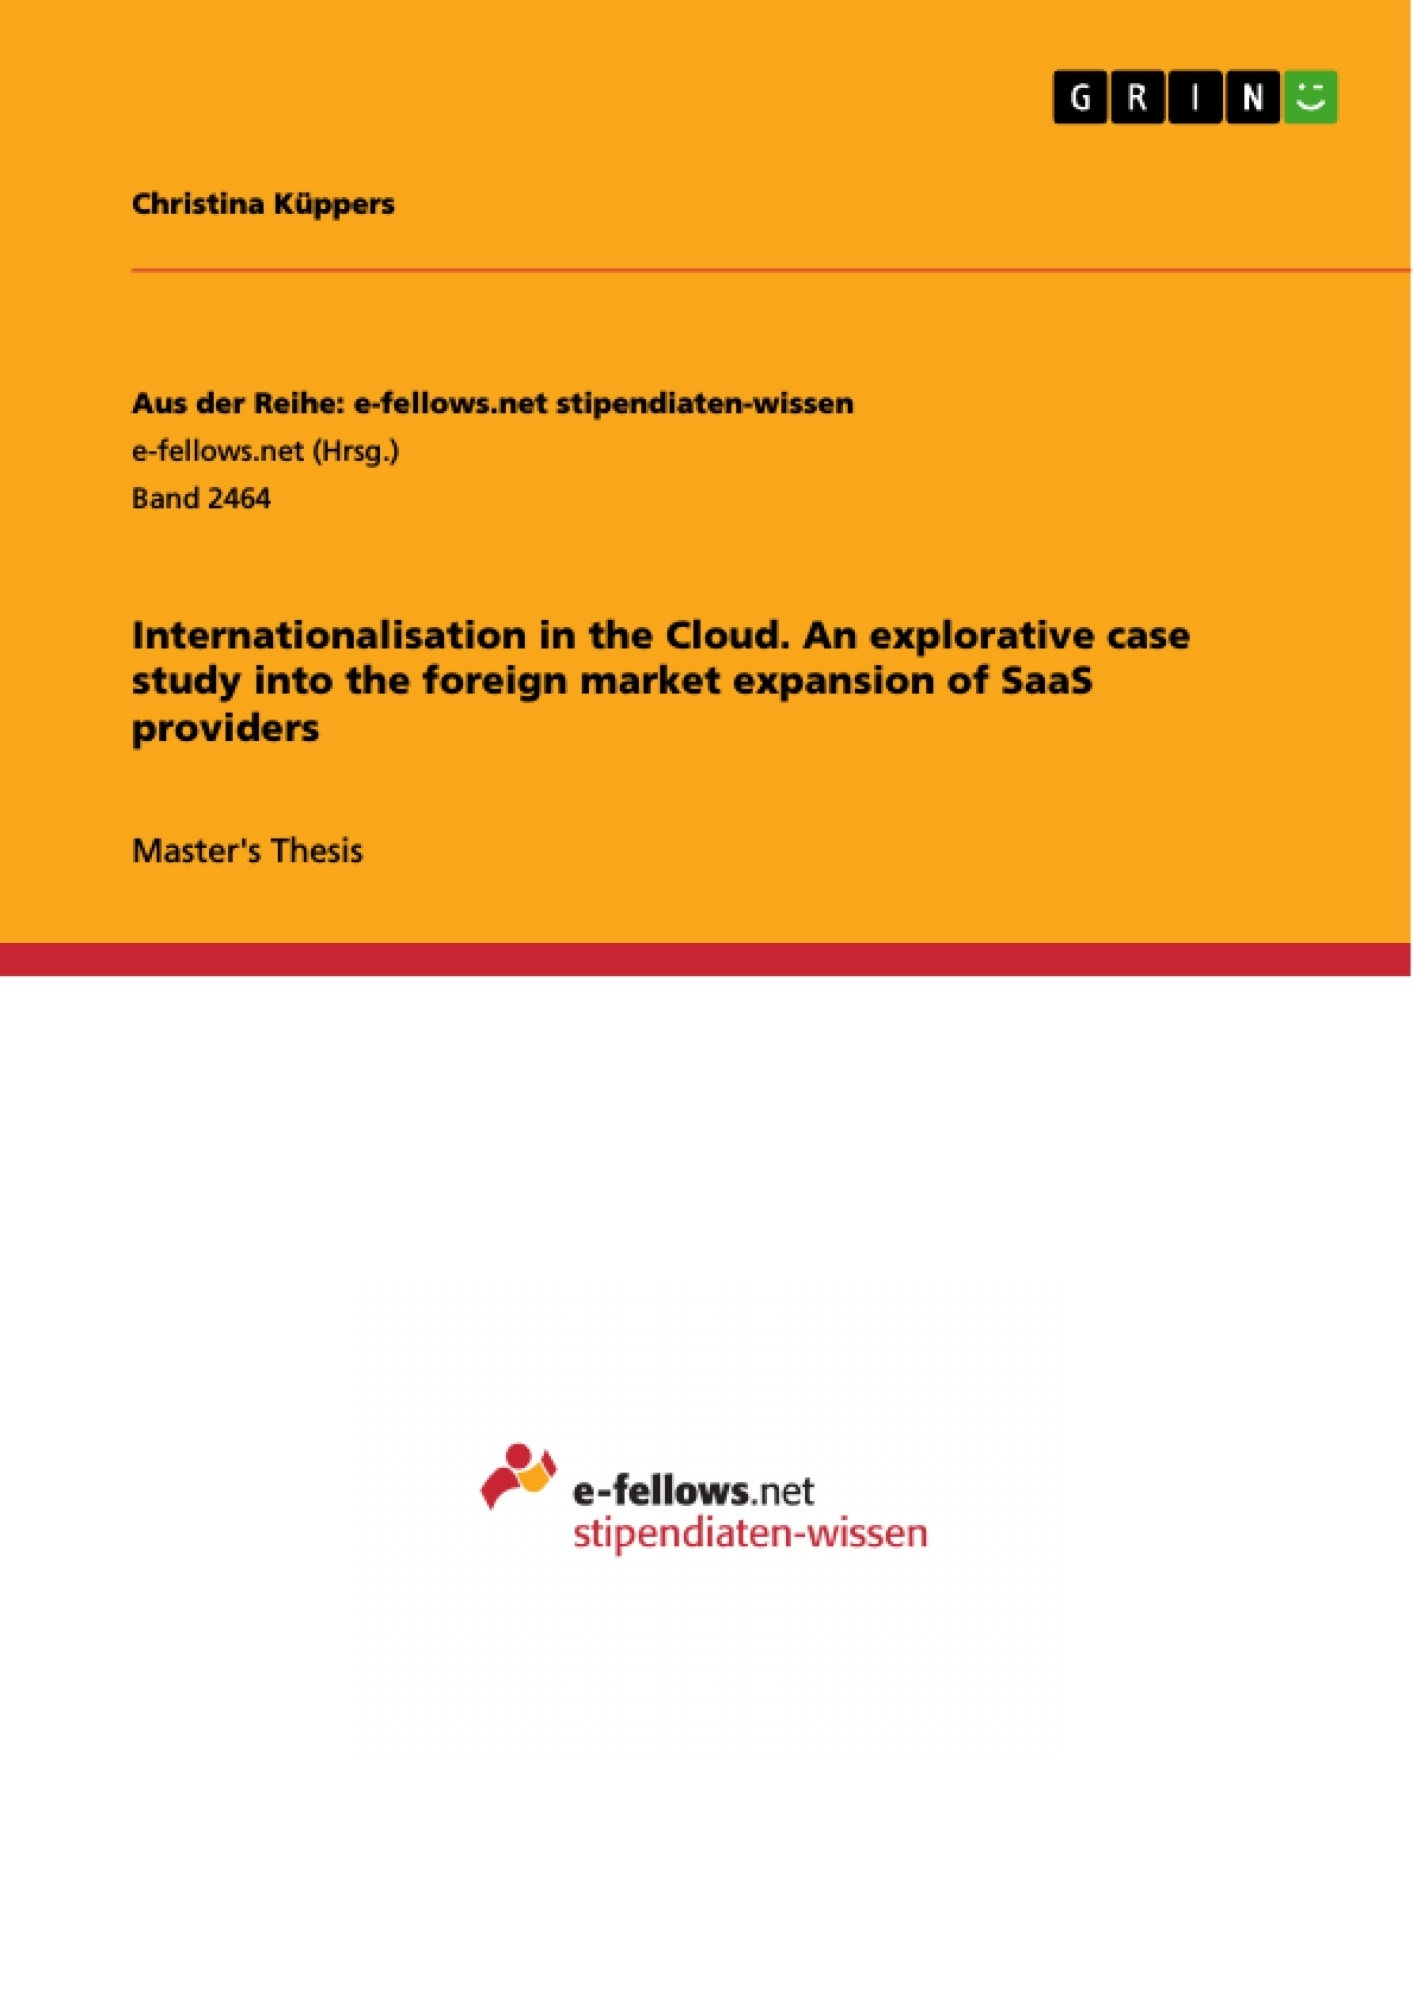 Title: Internationalisation in the Cloud. An explorative case study into the foreign market expansion of SaaS providers